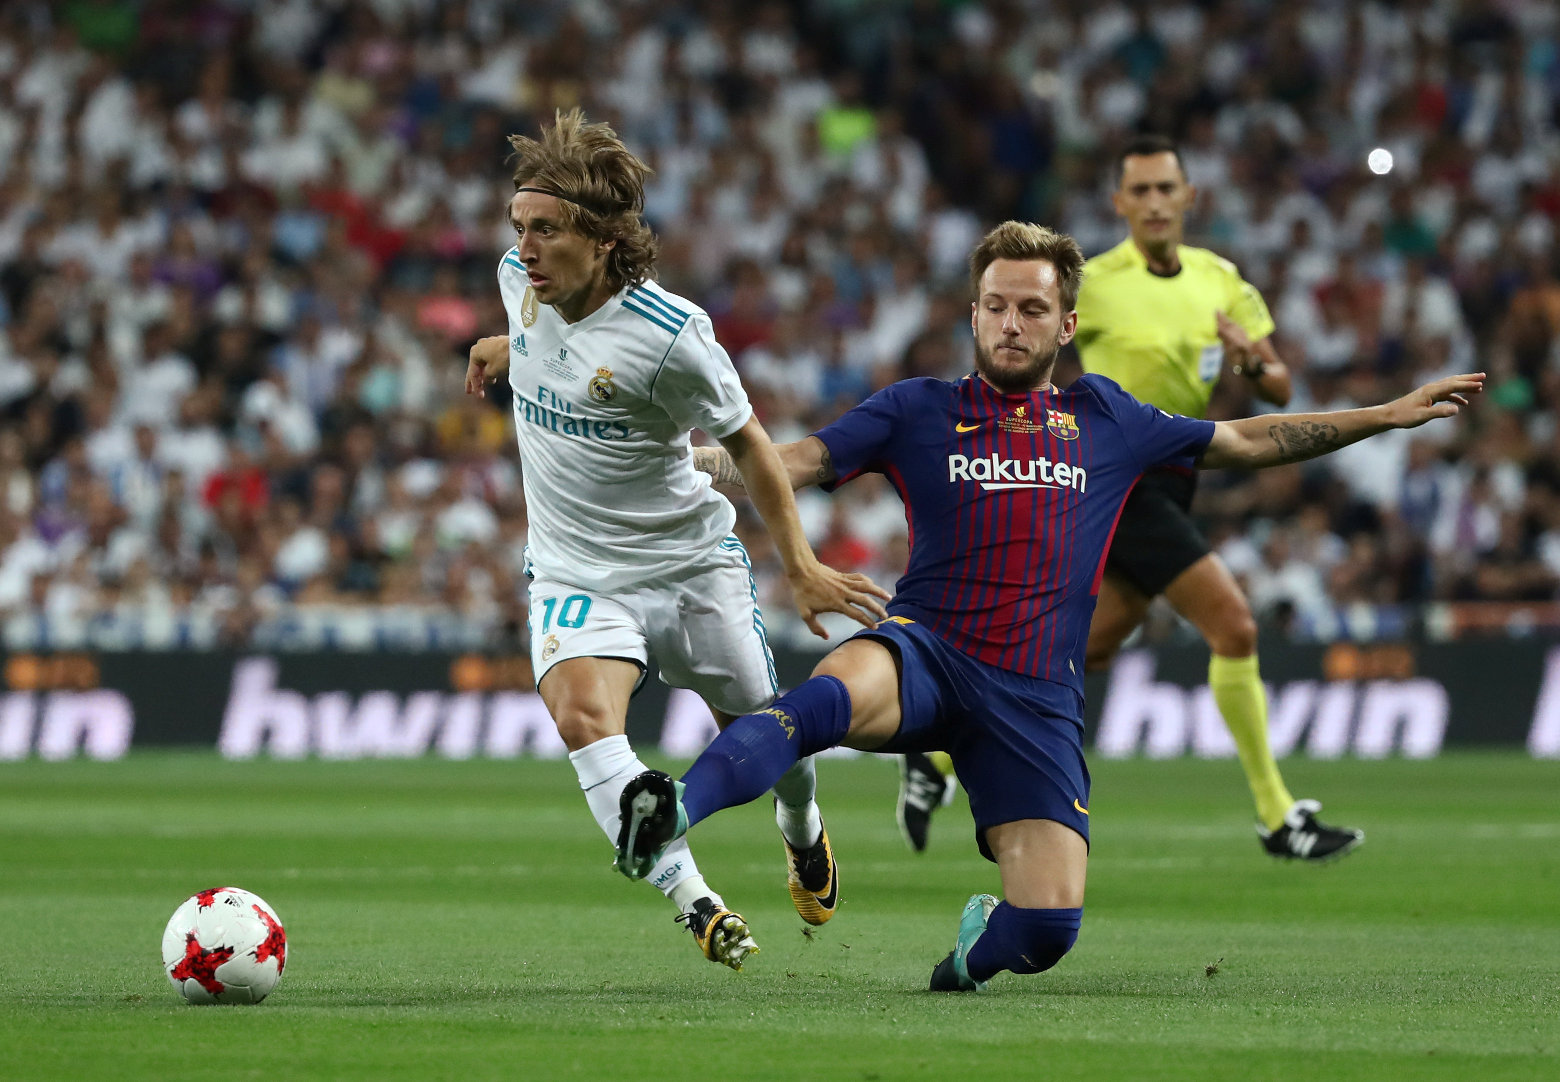 Soccer Football - Real Madrid vs Barcelona - Spanish Super Cup Second Leg - Madrid, Spain - August 16, 2017   Barcelona's Ivan Rakitic in action with Real Madrid's Luka Modric       REUTERS/Juan Medina